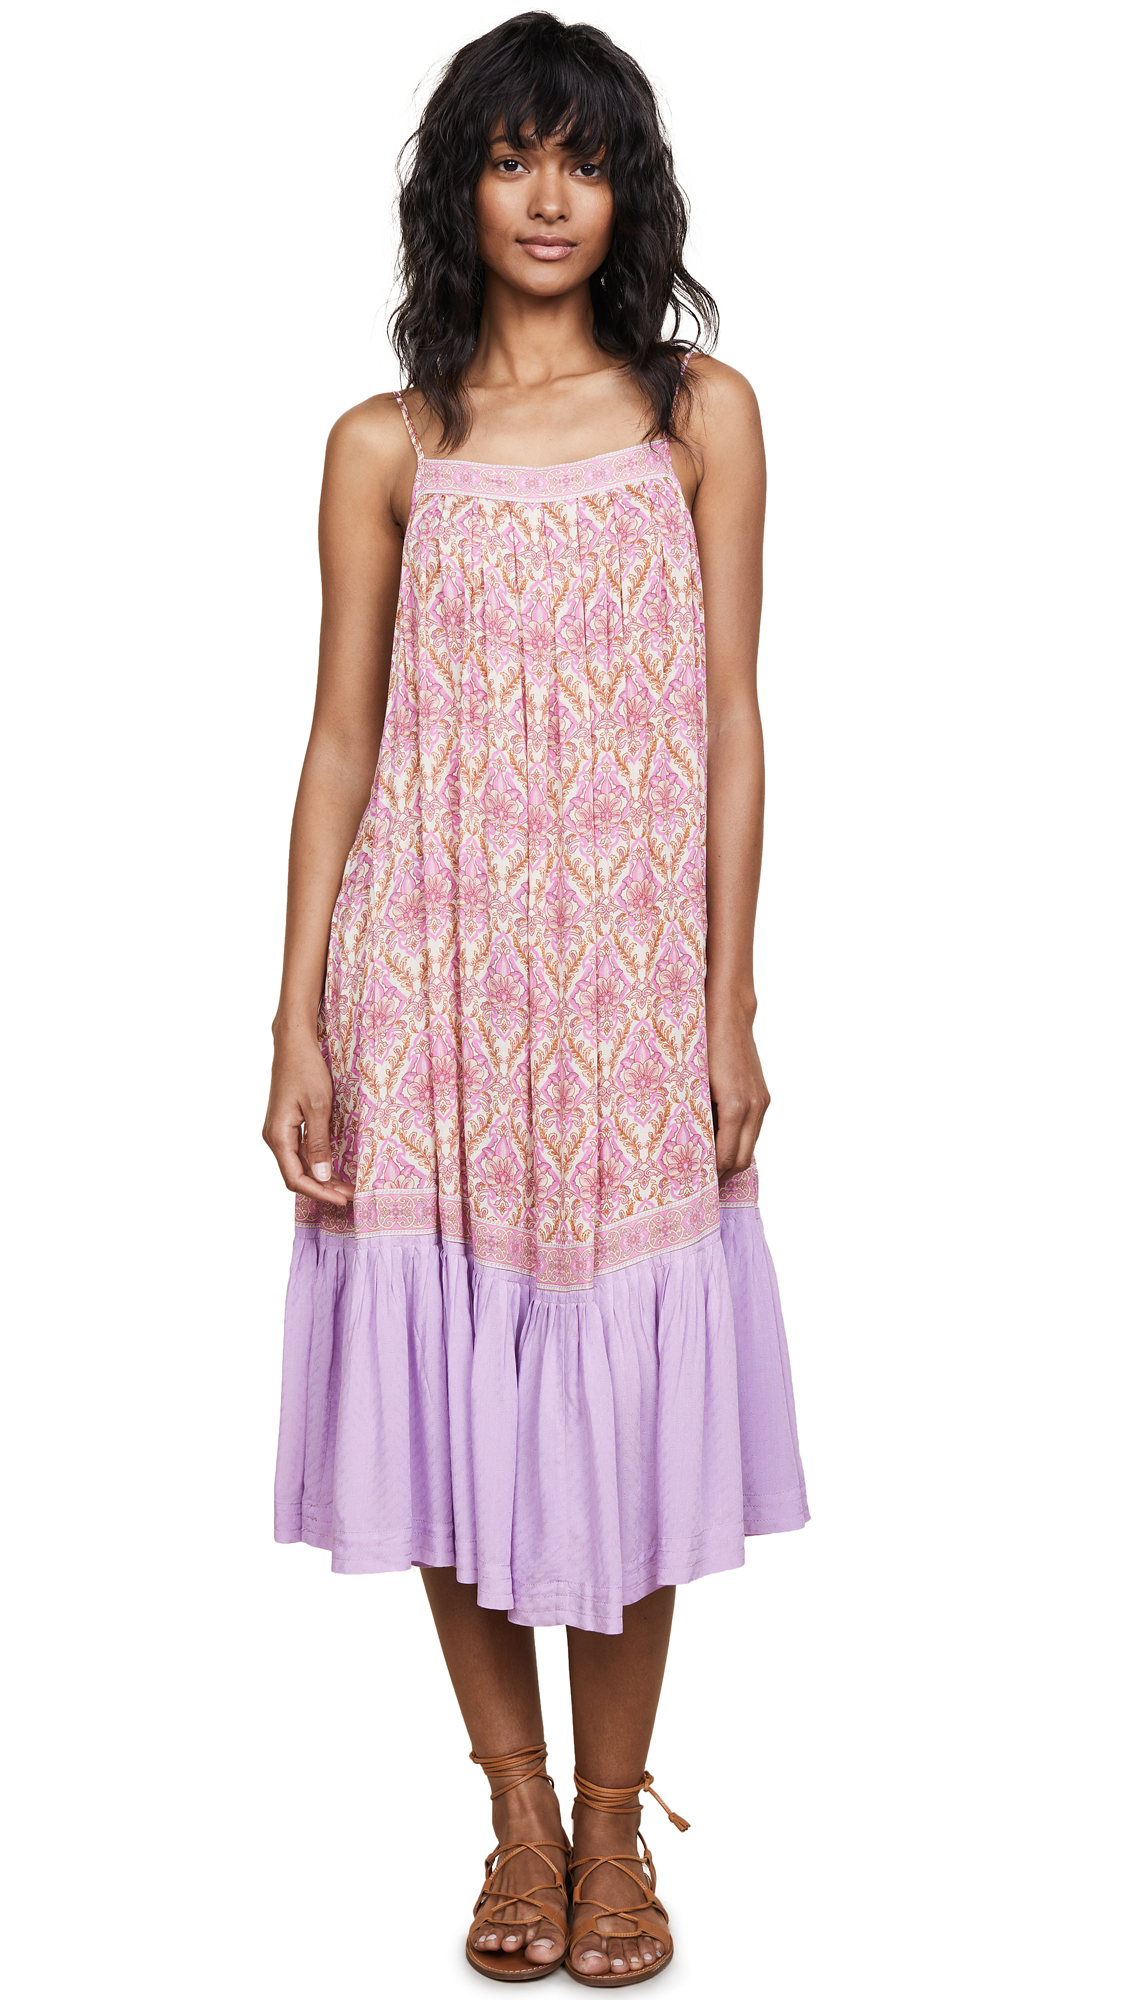 favourite-womens-clothing-brand-spell-shopbop1